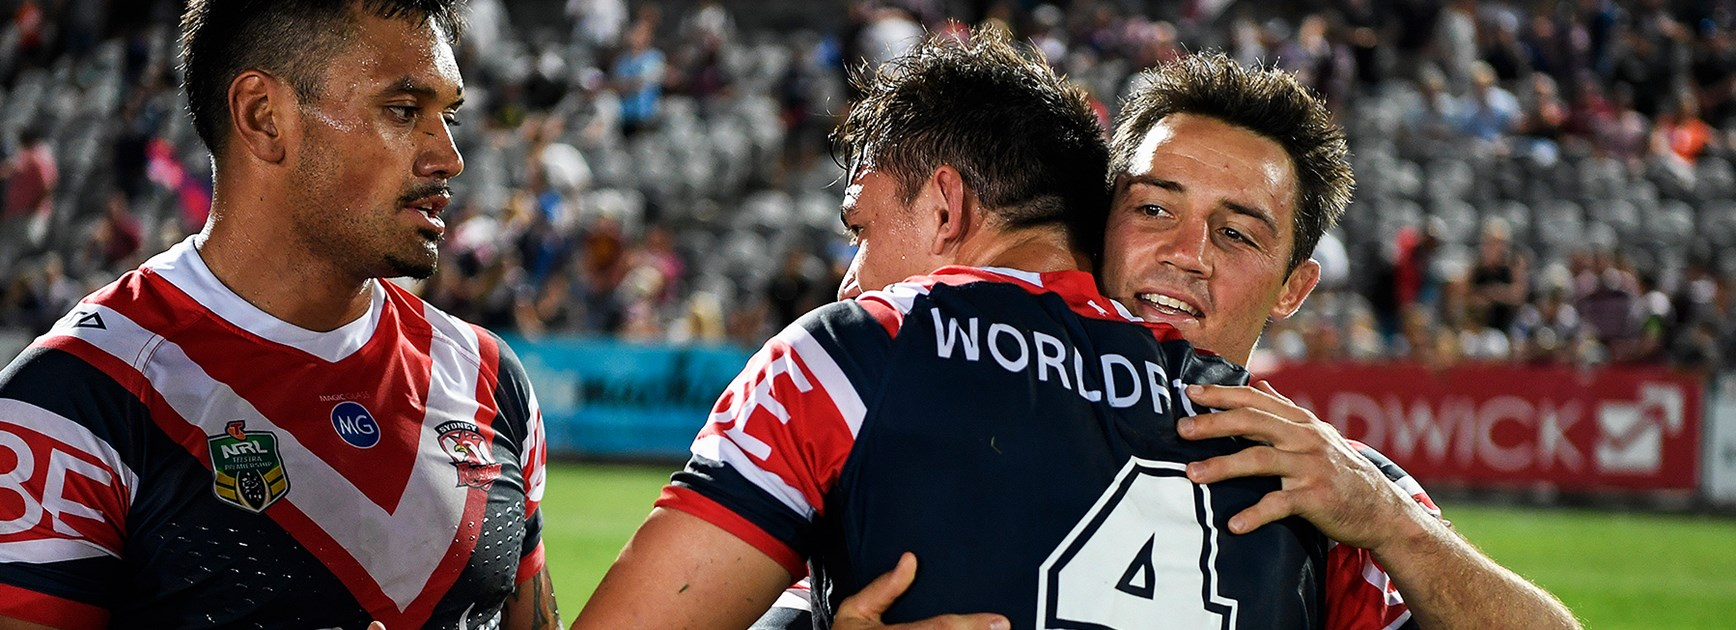 Roosters right edge wowed by Cronk influence